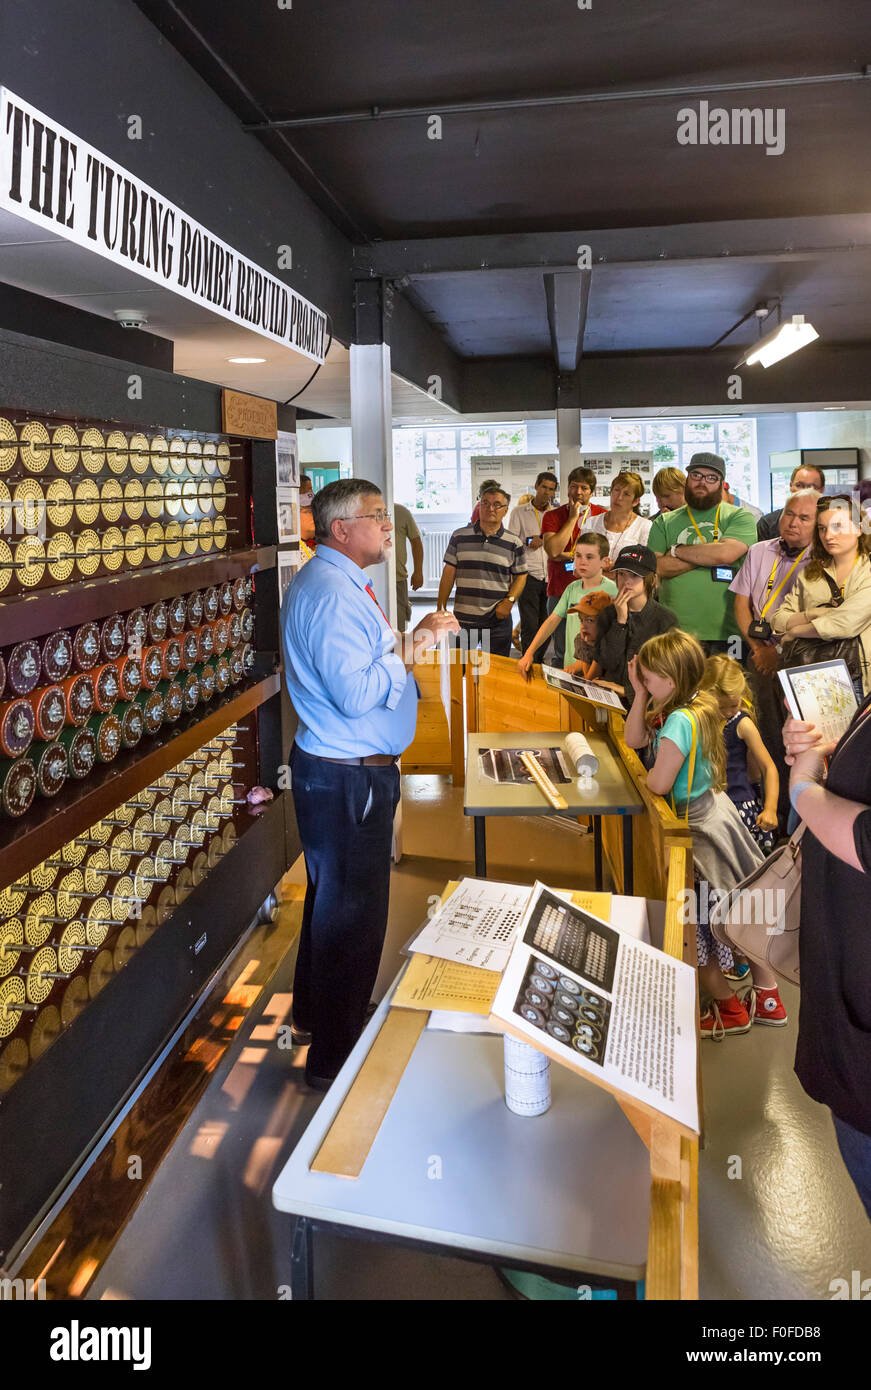 Visitors listening to a talk about the rebuilt Turing Bombe codebreaking machine, Bletchley Park, Buckinghamshire, Stock Photo